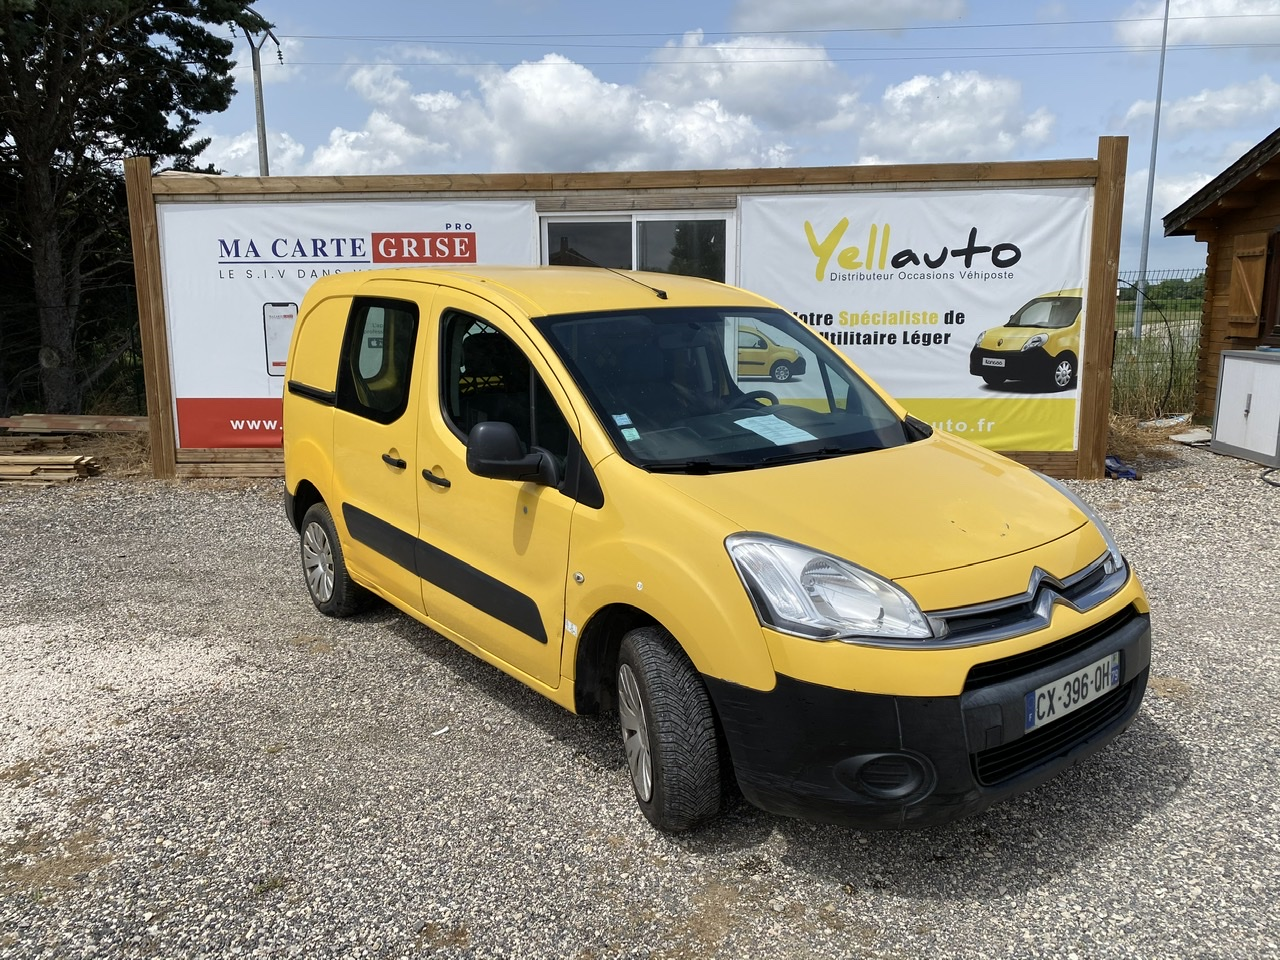 CITROËN BERLINGO 1.6 HDI 75 confort 3 places de 2013 avec 124360 km